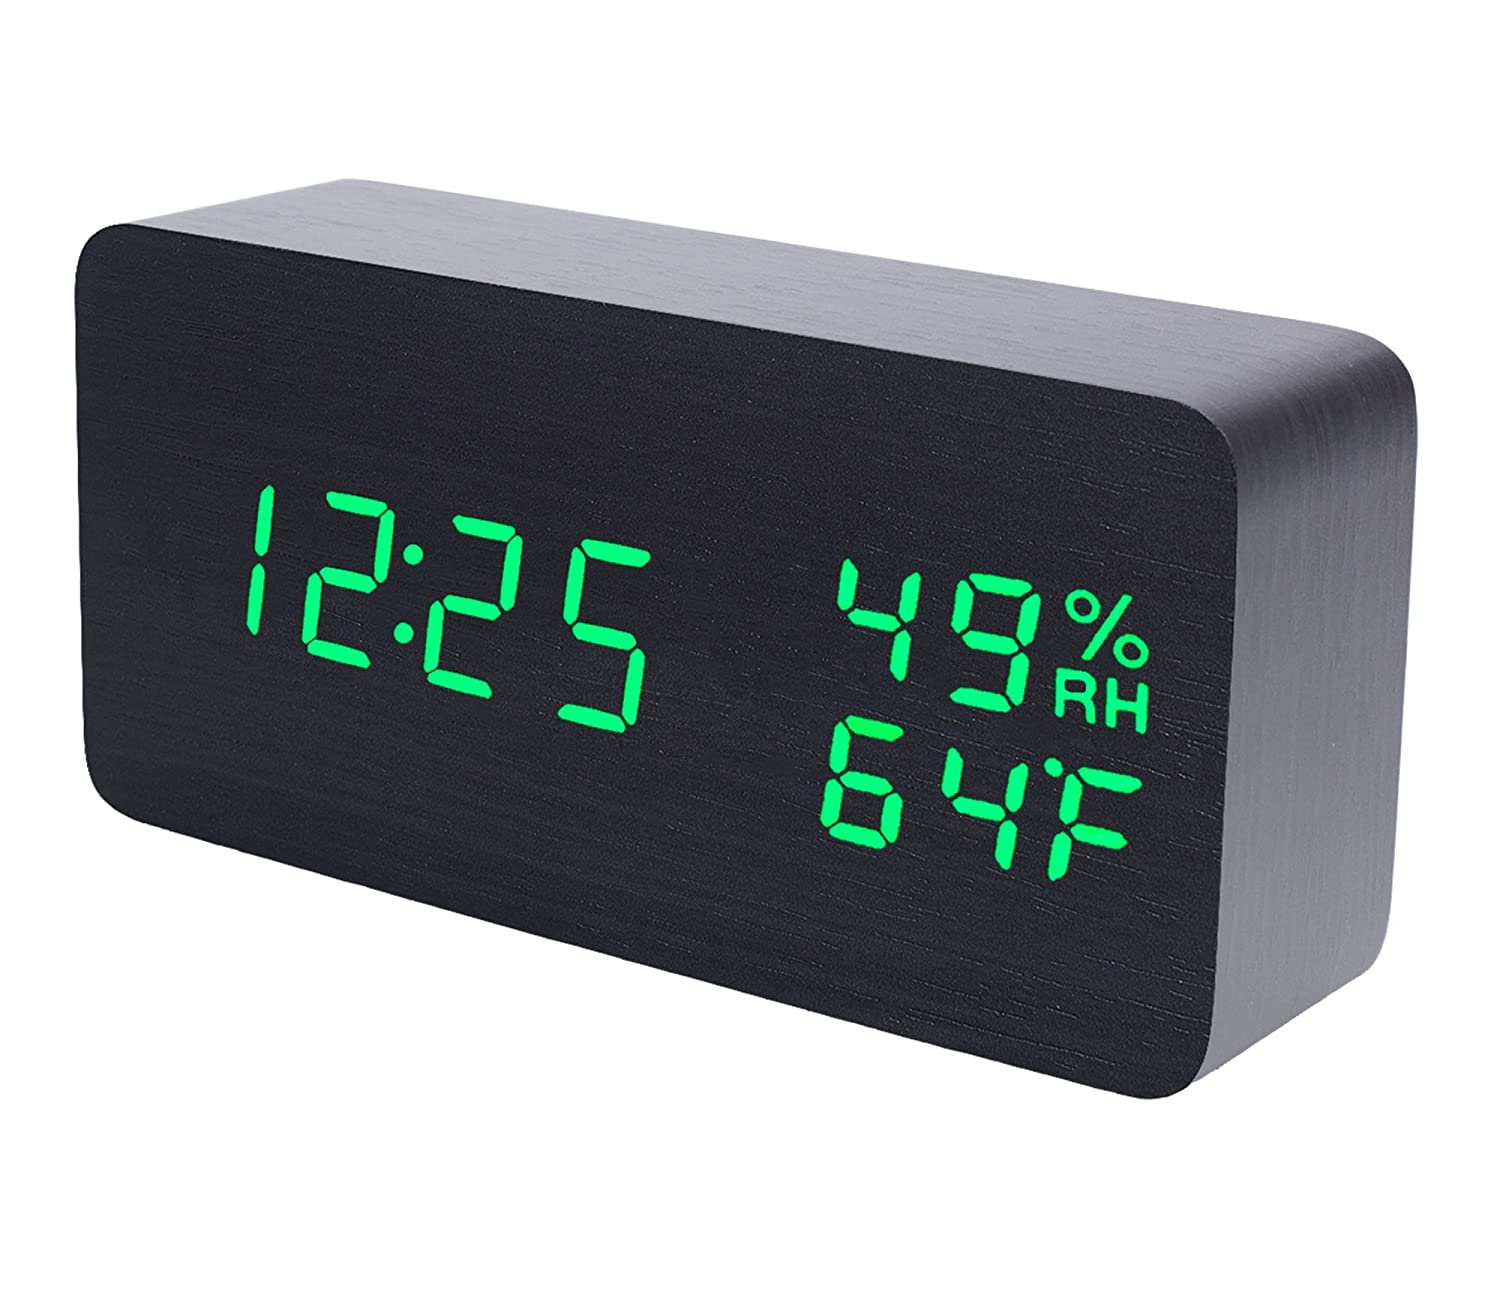 Raercodia Wooden Alarm Clock Modern Wood Clock Digital Electronic Desk Clock with Night Light LED Display Time Date Temperature Humidity Voice Control Brightness Adjust for Home Office (Black,Blue) RCCK-012-150BKBU